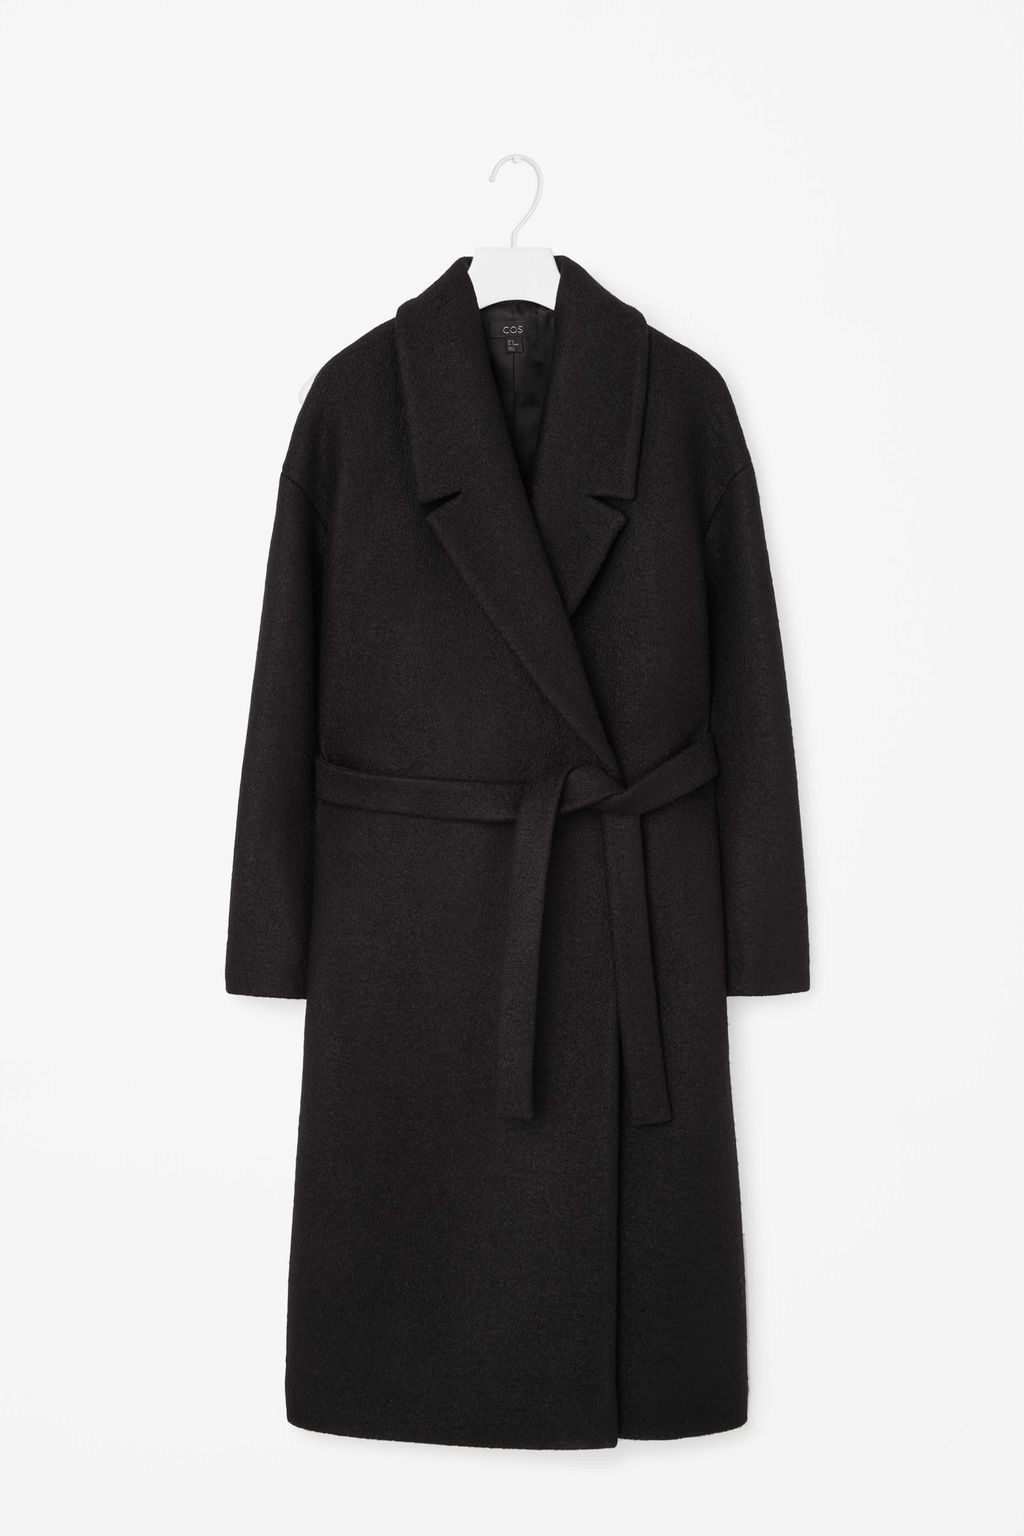 Belted Wool Coat - pattern: plain; style: single breasted; length: on the knee; collar: standard lapel/rever collar; predominant colour: black; occasions: casual, work, creative work; fit: tailored/fitted; fibres: wool - 100%; waist detail: belted waist/tie at waist/drawstring; sleeve length: long sleeve; sleeve style: standard; collar break: medium; pattern type: fabric; texture group: woven bulky/heavy; season: a/w 2015